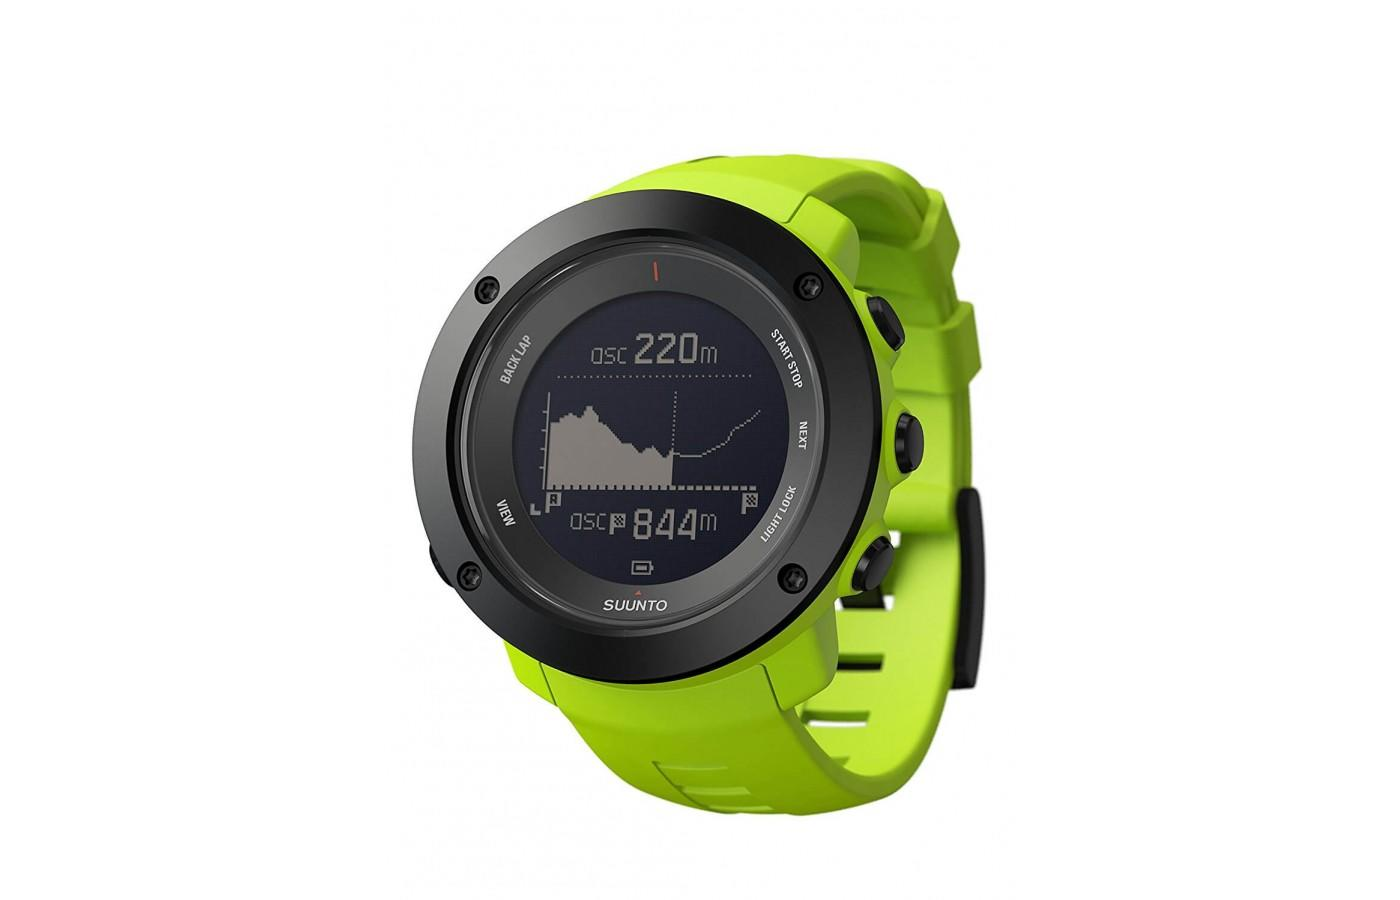 The Suunto Ambit 3 peak also comes in a flashy green